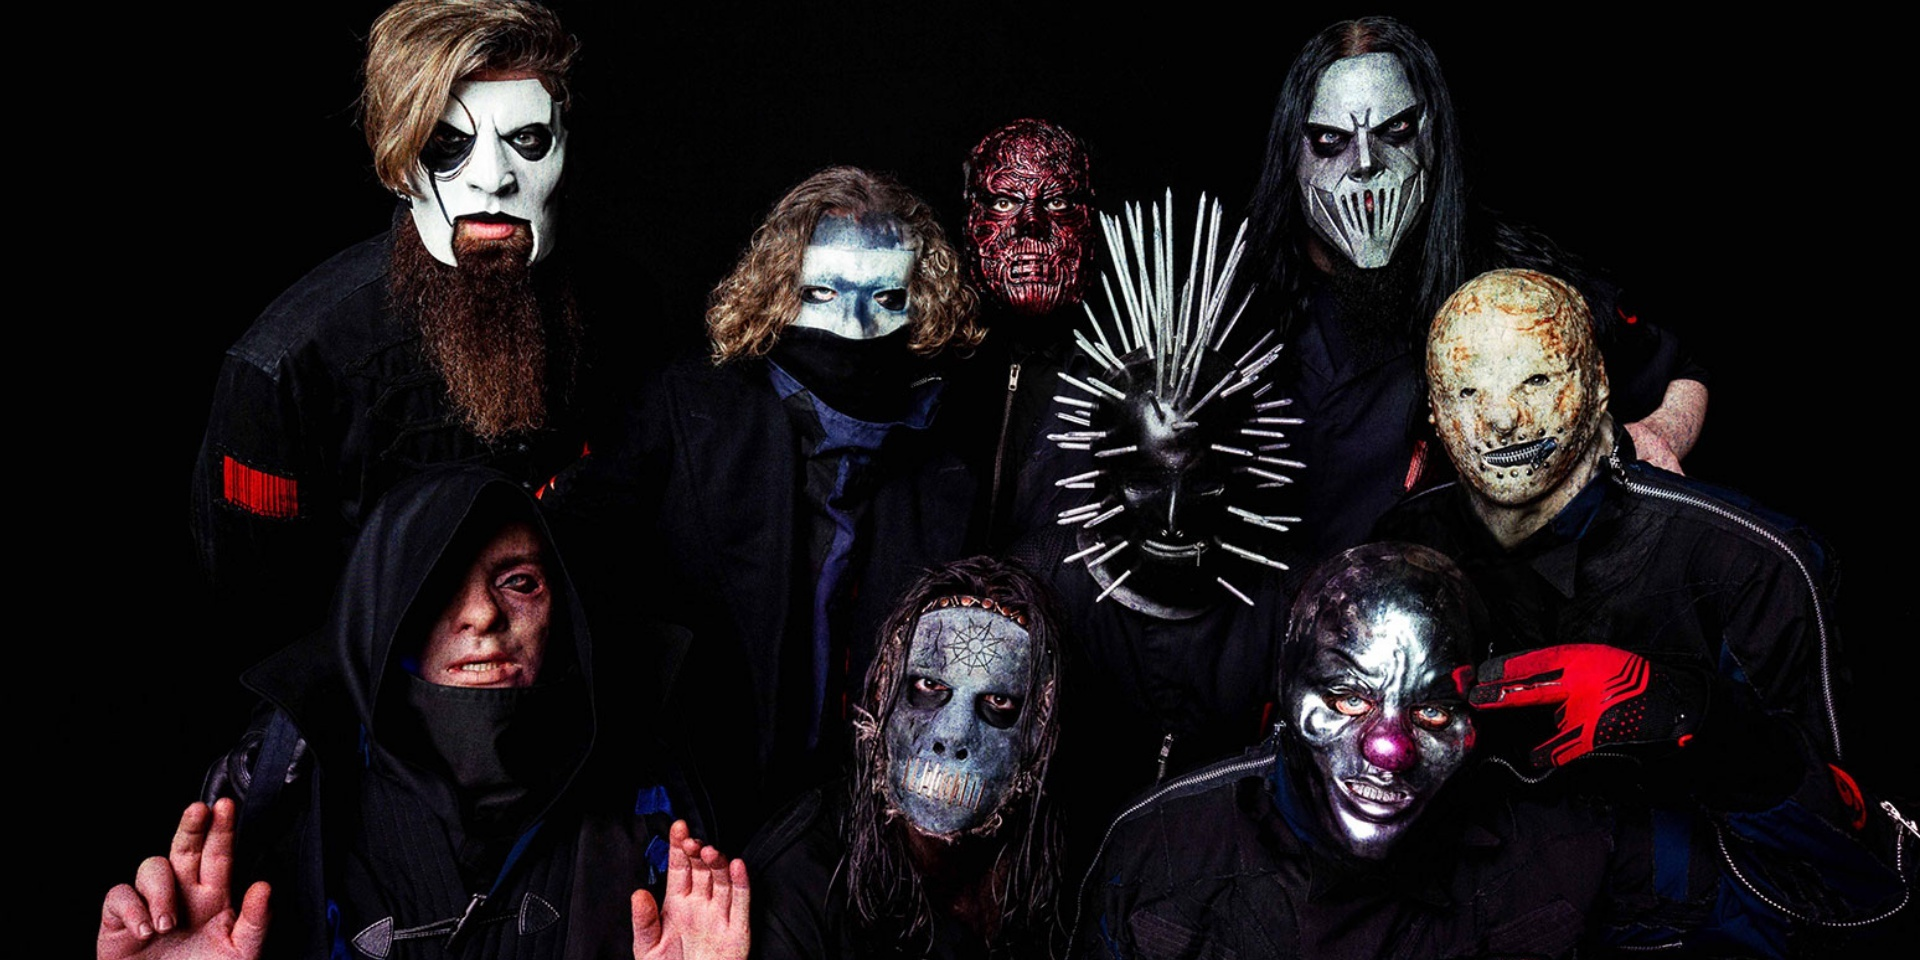 Slipknot details forthcoming album, shares new single and music video, 'Unsainted' – watch